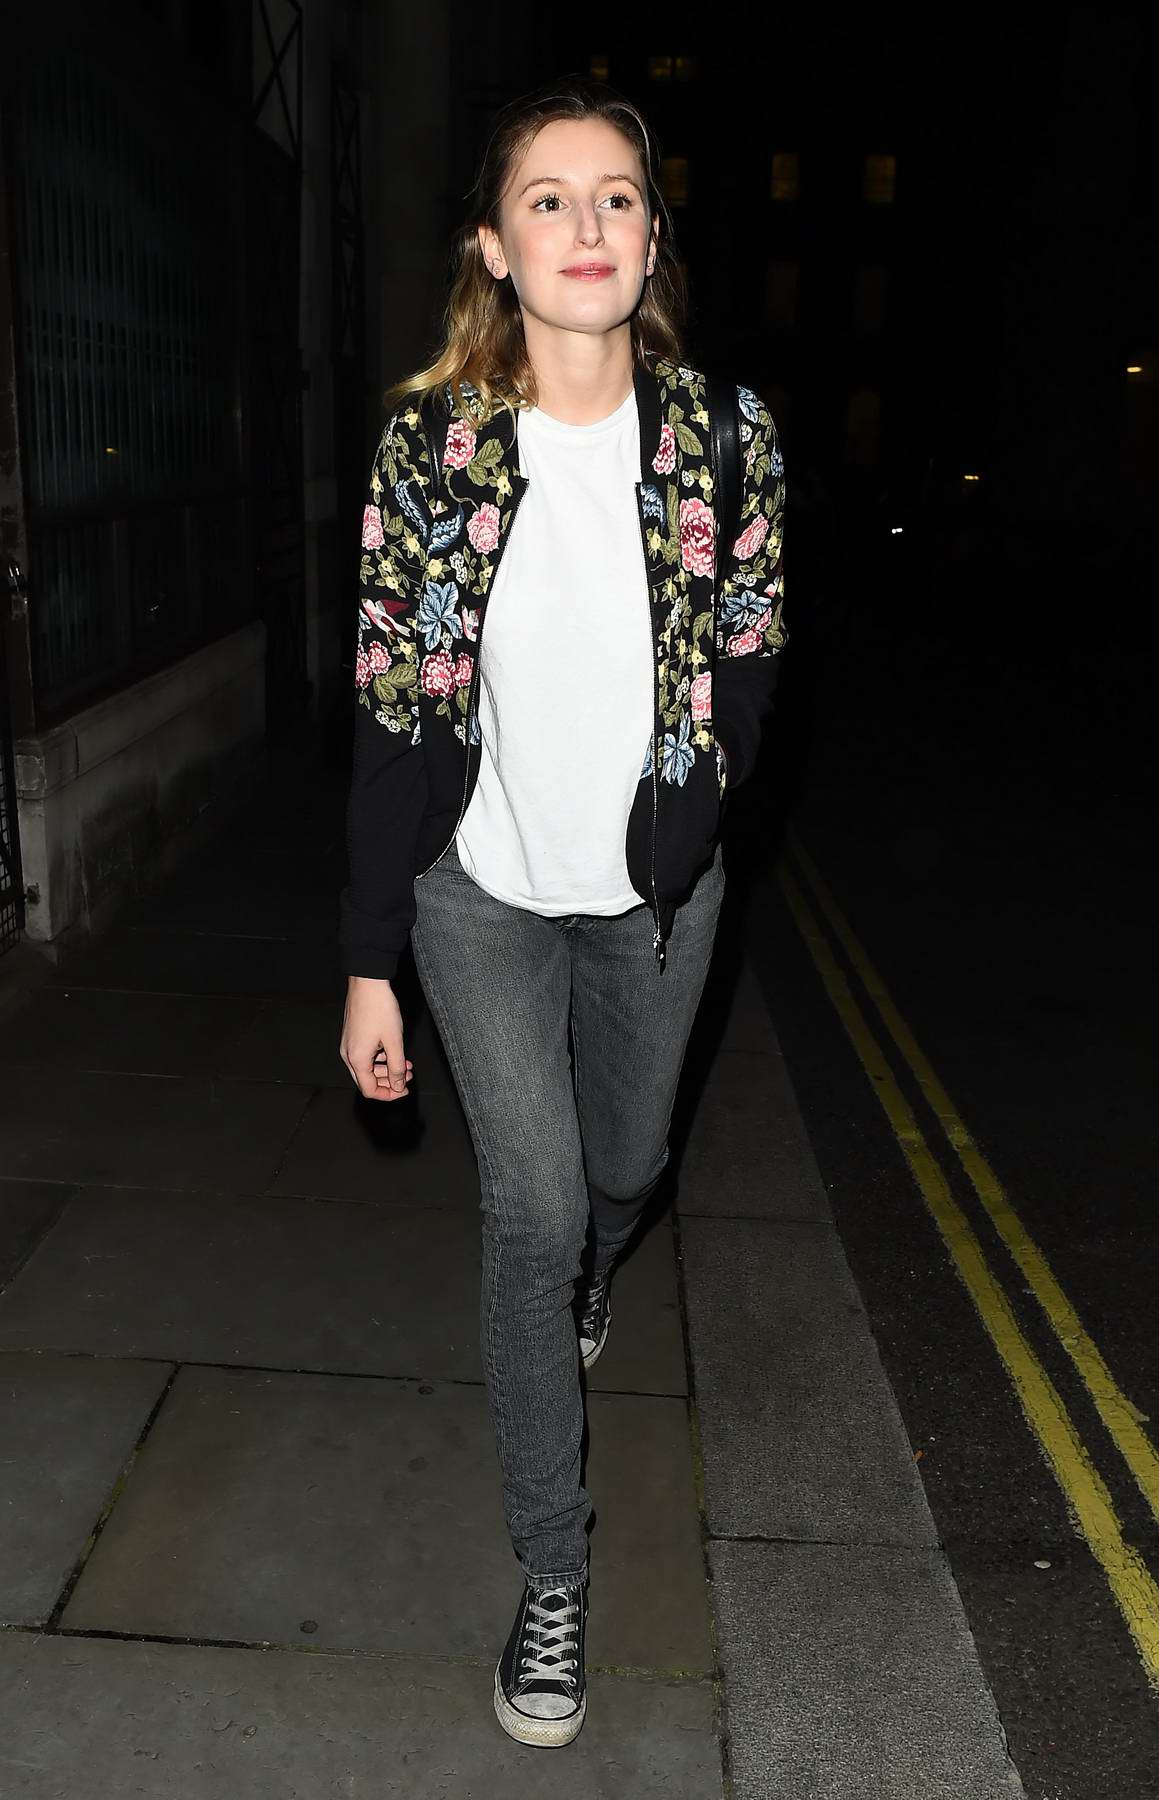 Laura Carmichael leaves after her performance in Disco Pigs at the Trafalgar Theatre in London